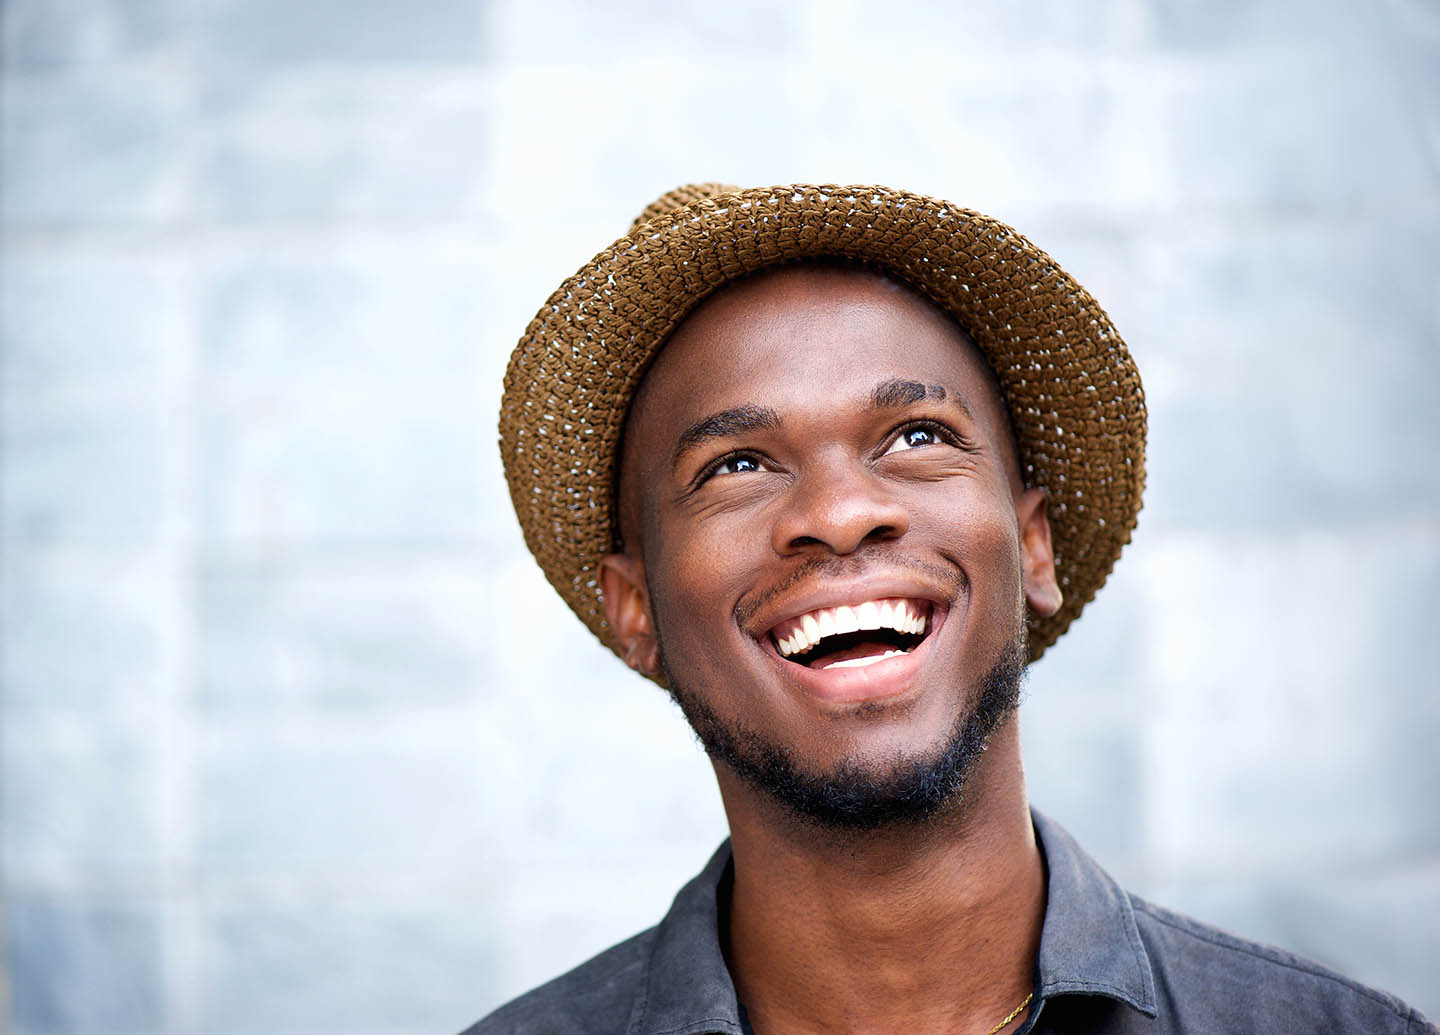 man in hat looking up smiling